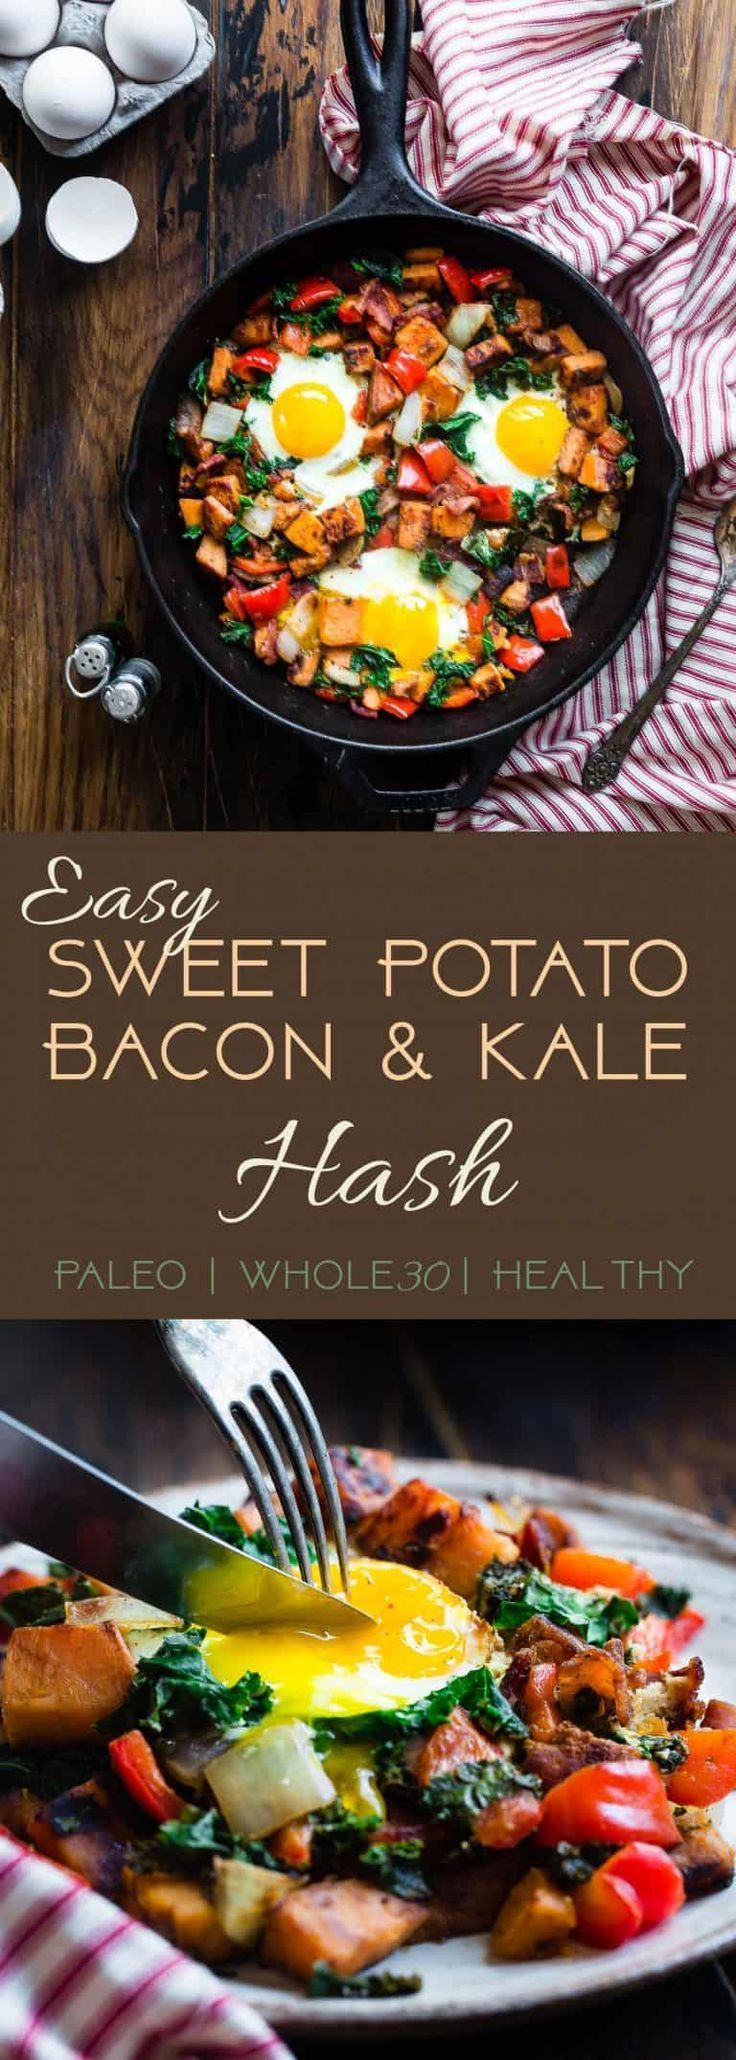 Breakfast Hash with Squash, Kale and Peppers {GF} - Food Faith Fitness - #breakfast #faith #fitness...